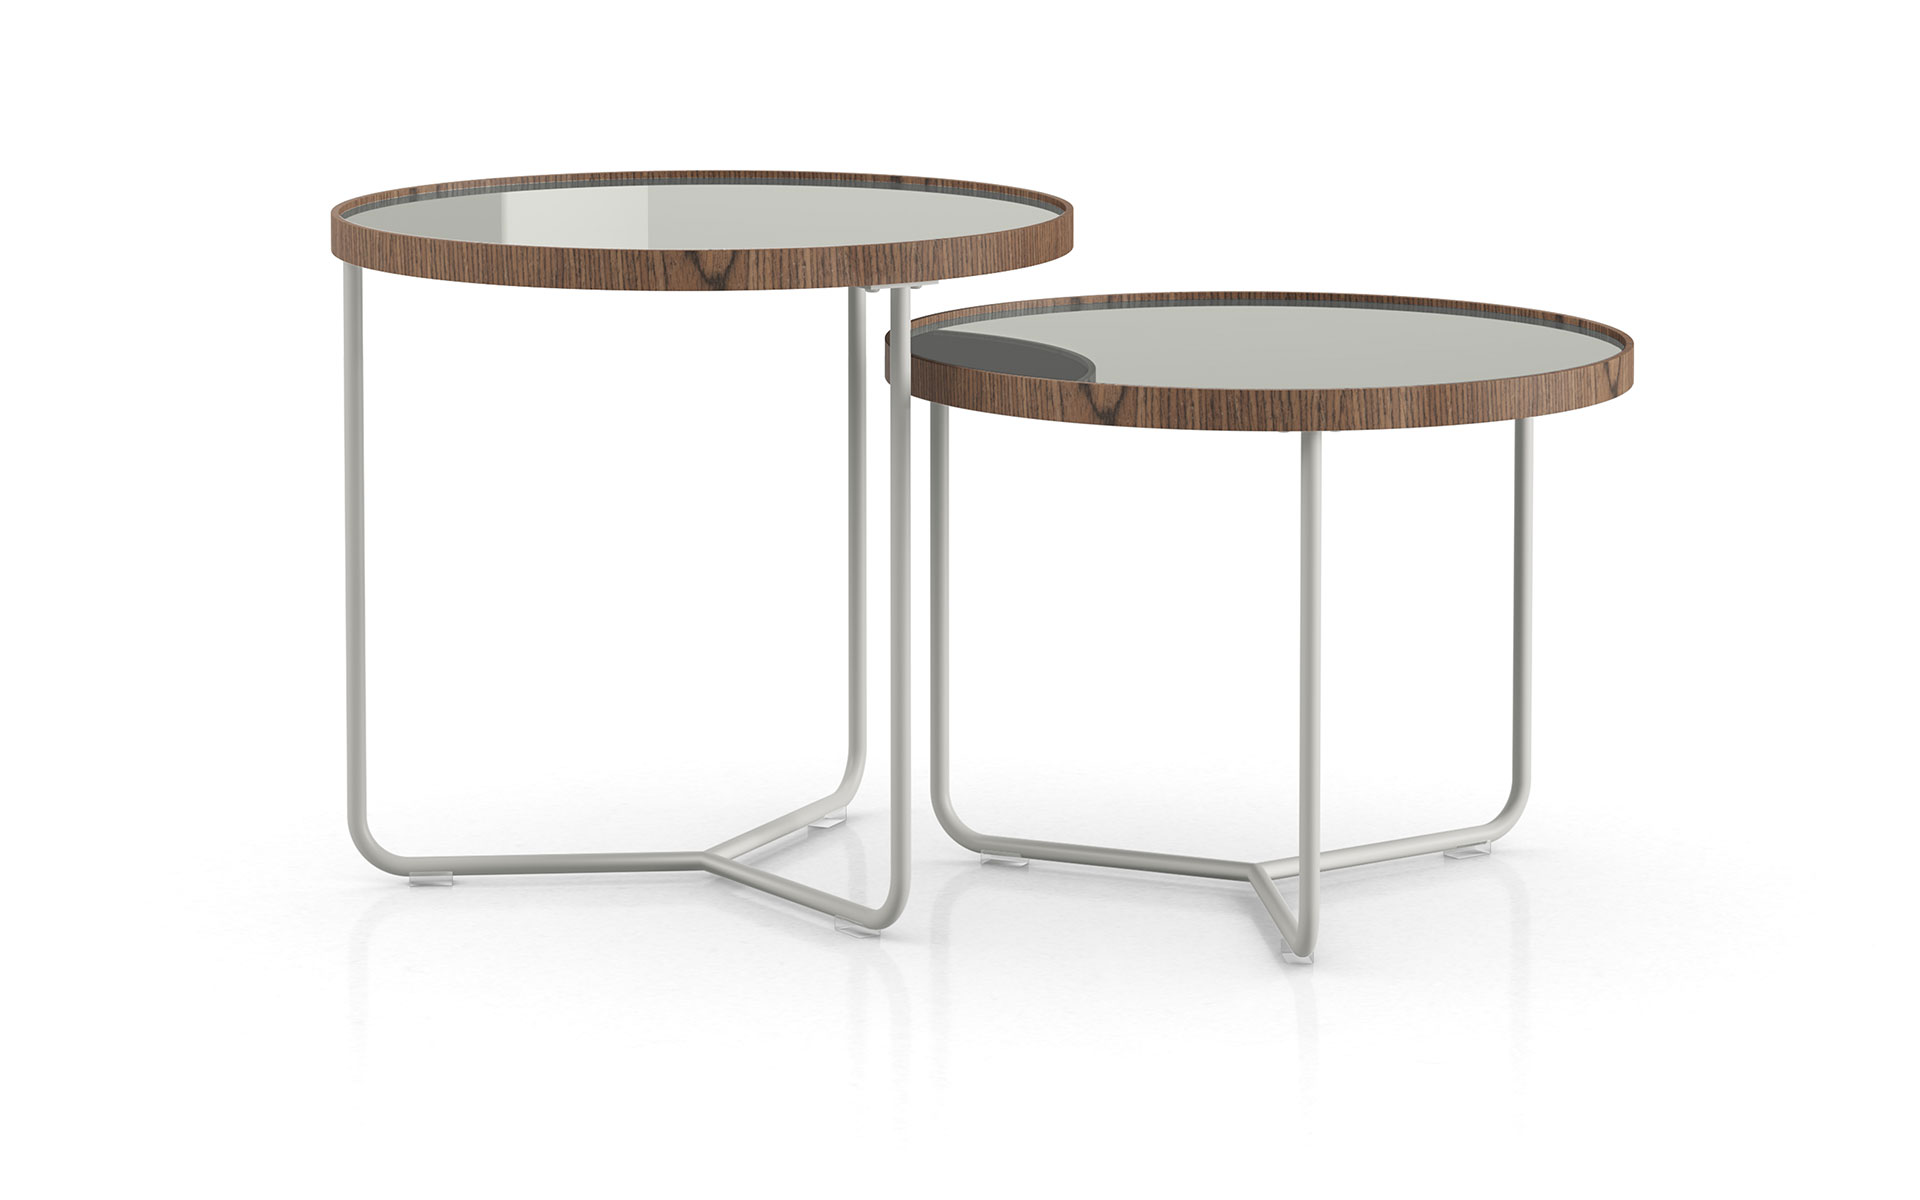 Phenomenal Modloft Adelphi Nesting Side Tables Caraccident5 Cool Chair Designs And Ideas Caraccident5Info